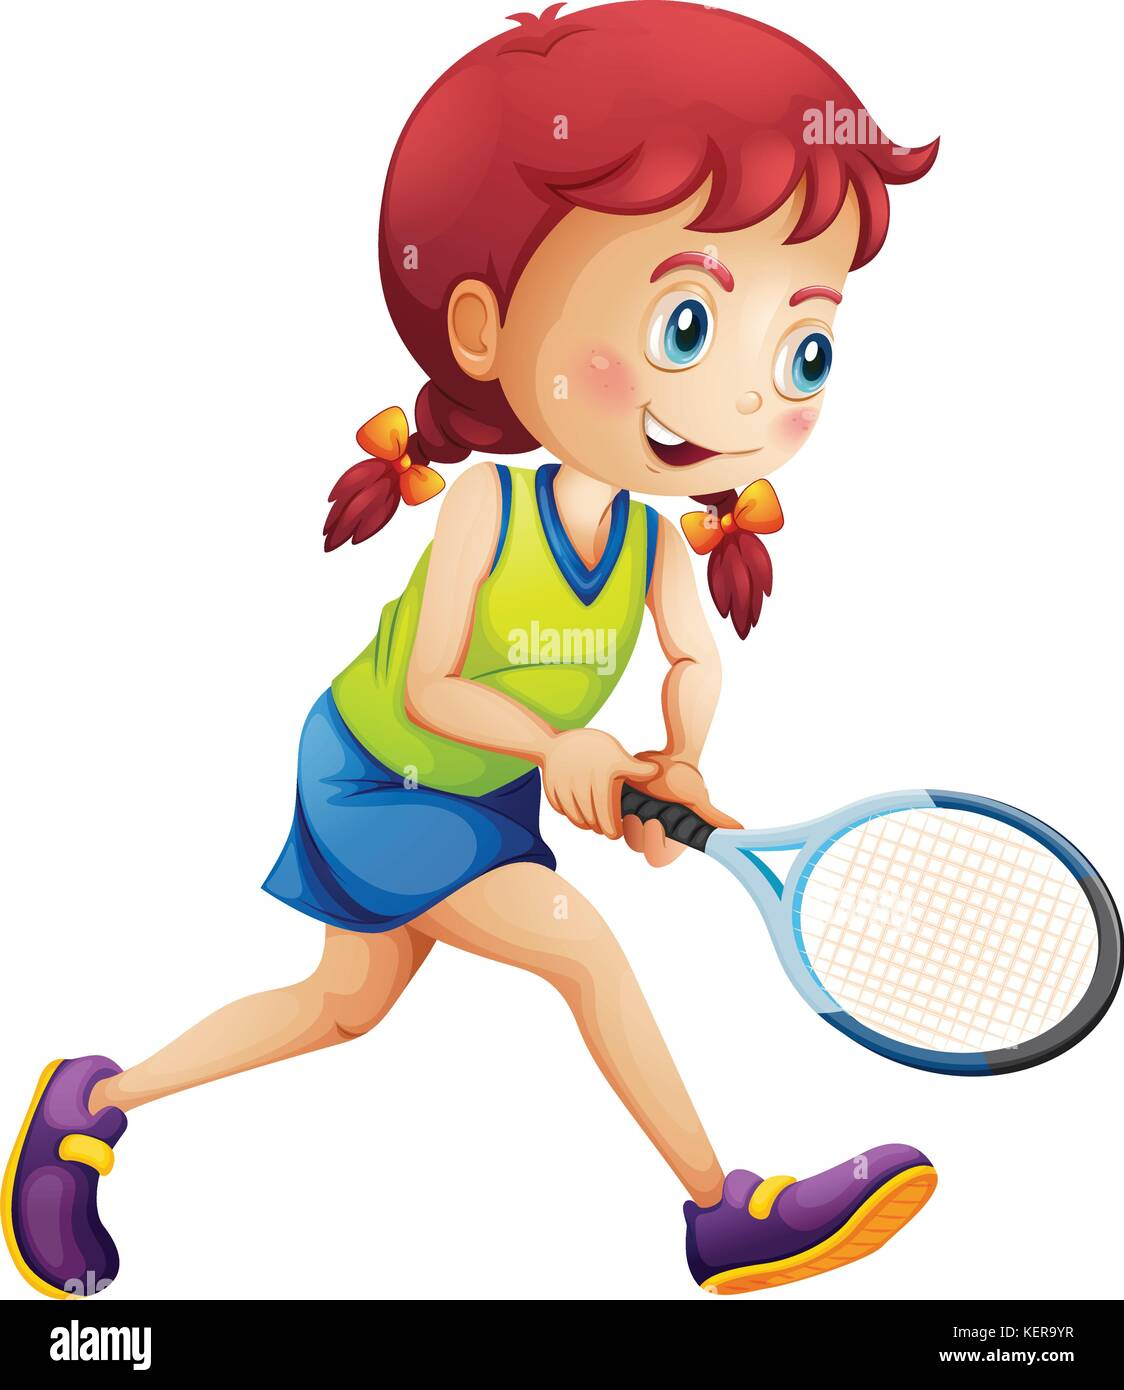 Illustration Of A Young Lady Playing Tennis On A White Background Stock Vector Image Art Alamy